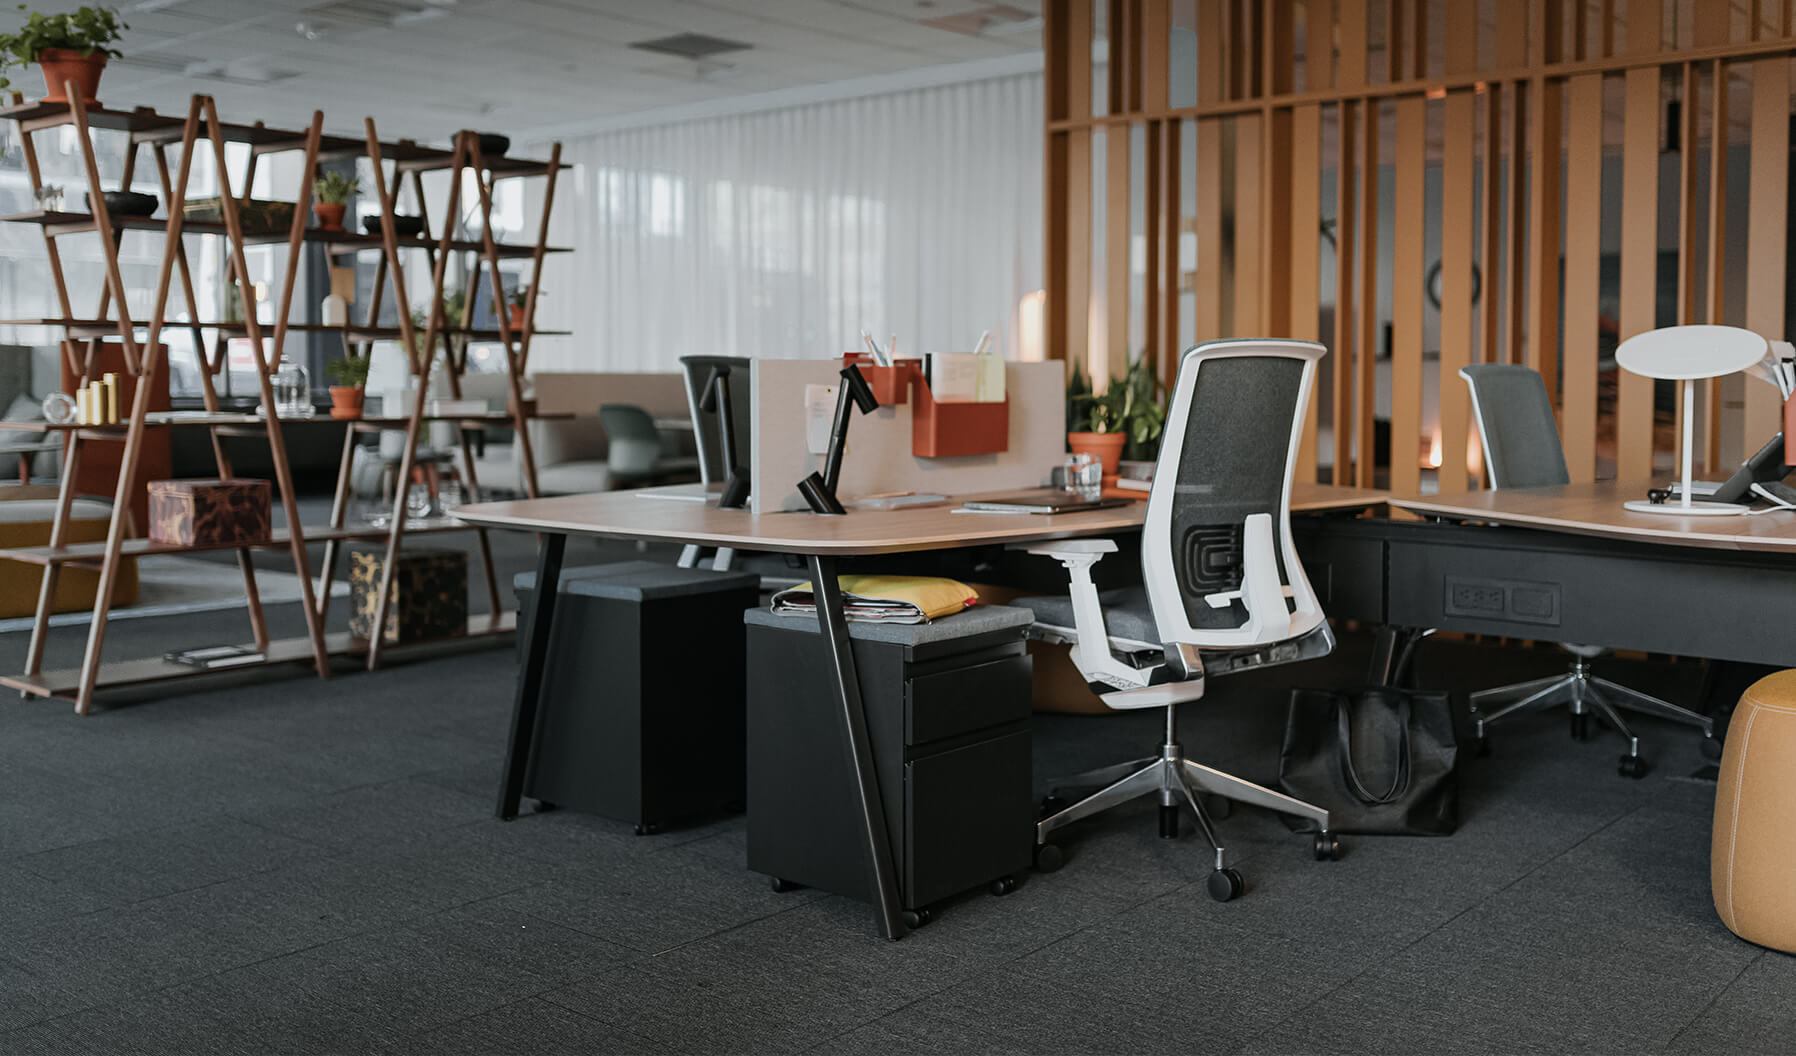 The layering of spaces is demonstrated here in showing how a